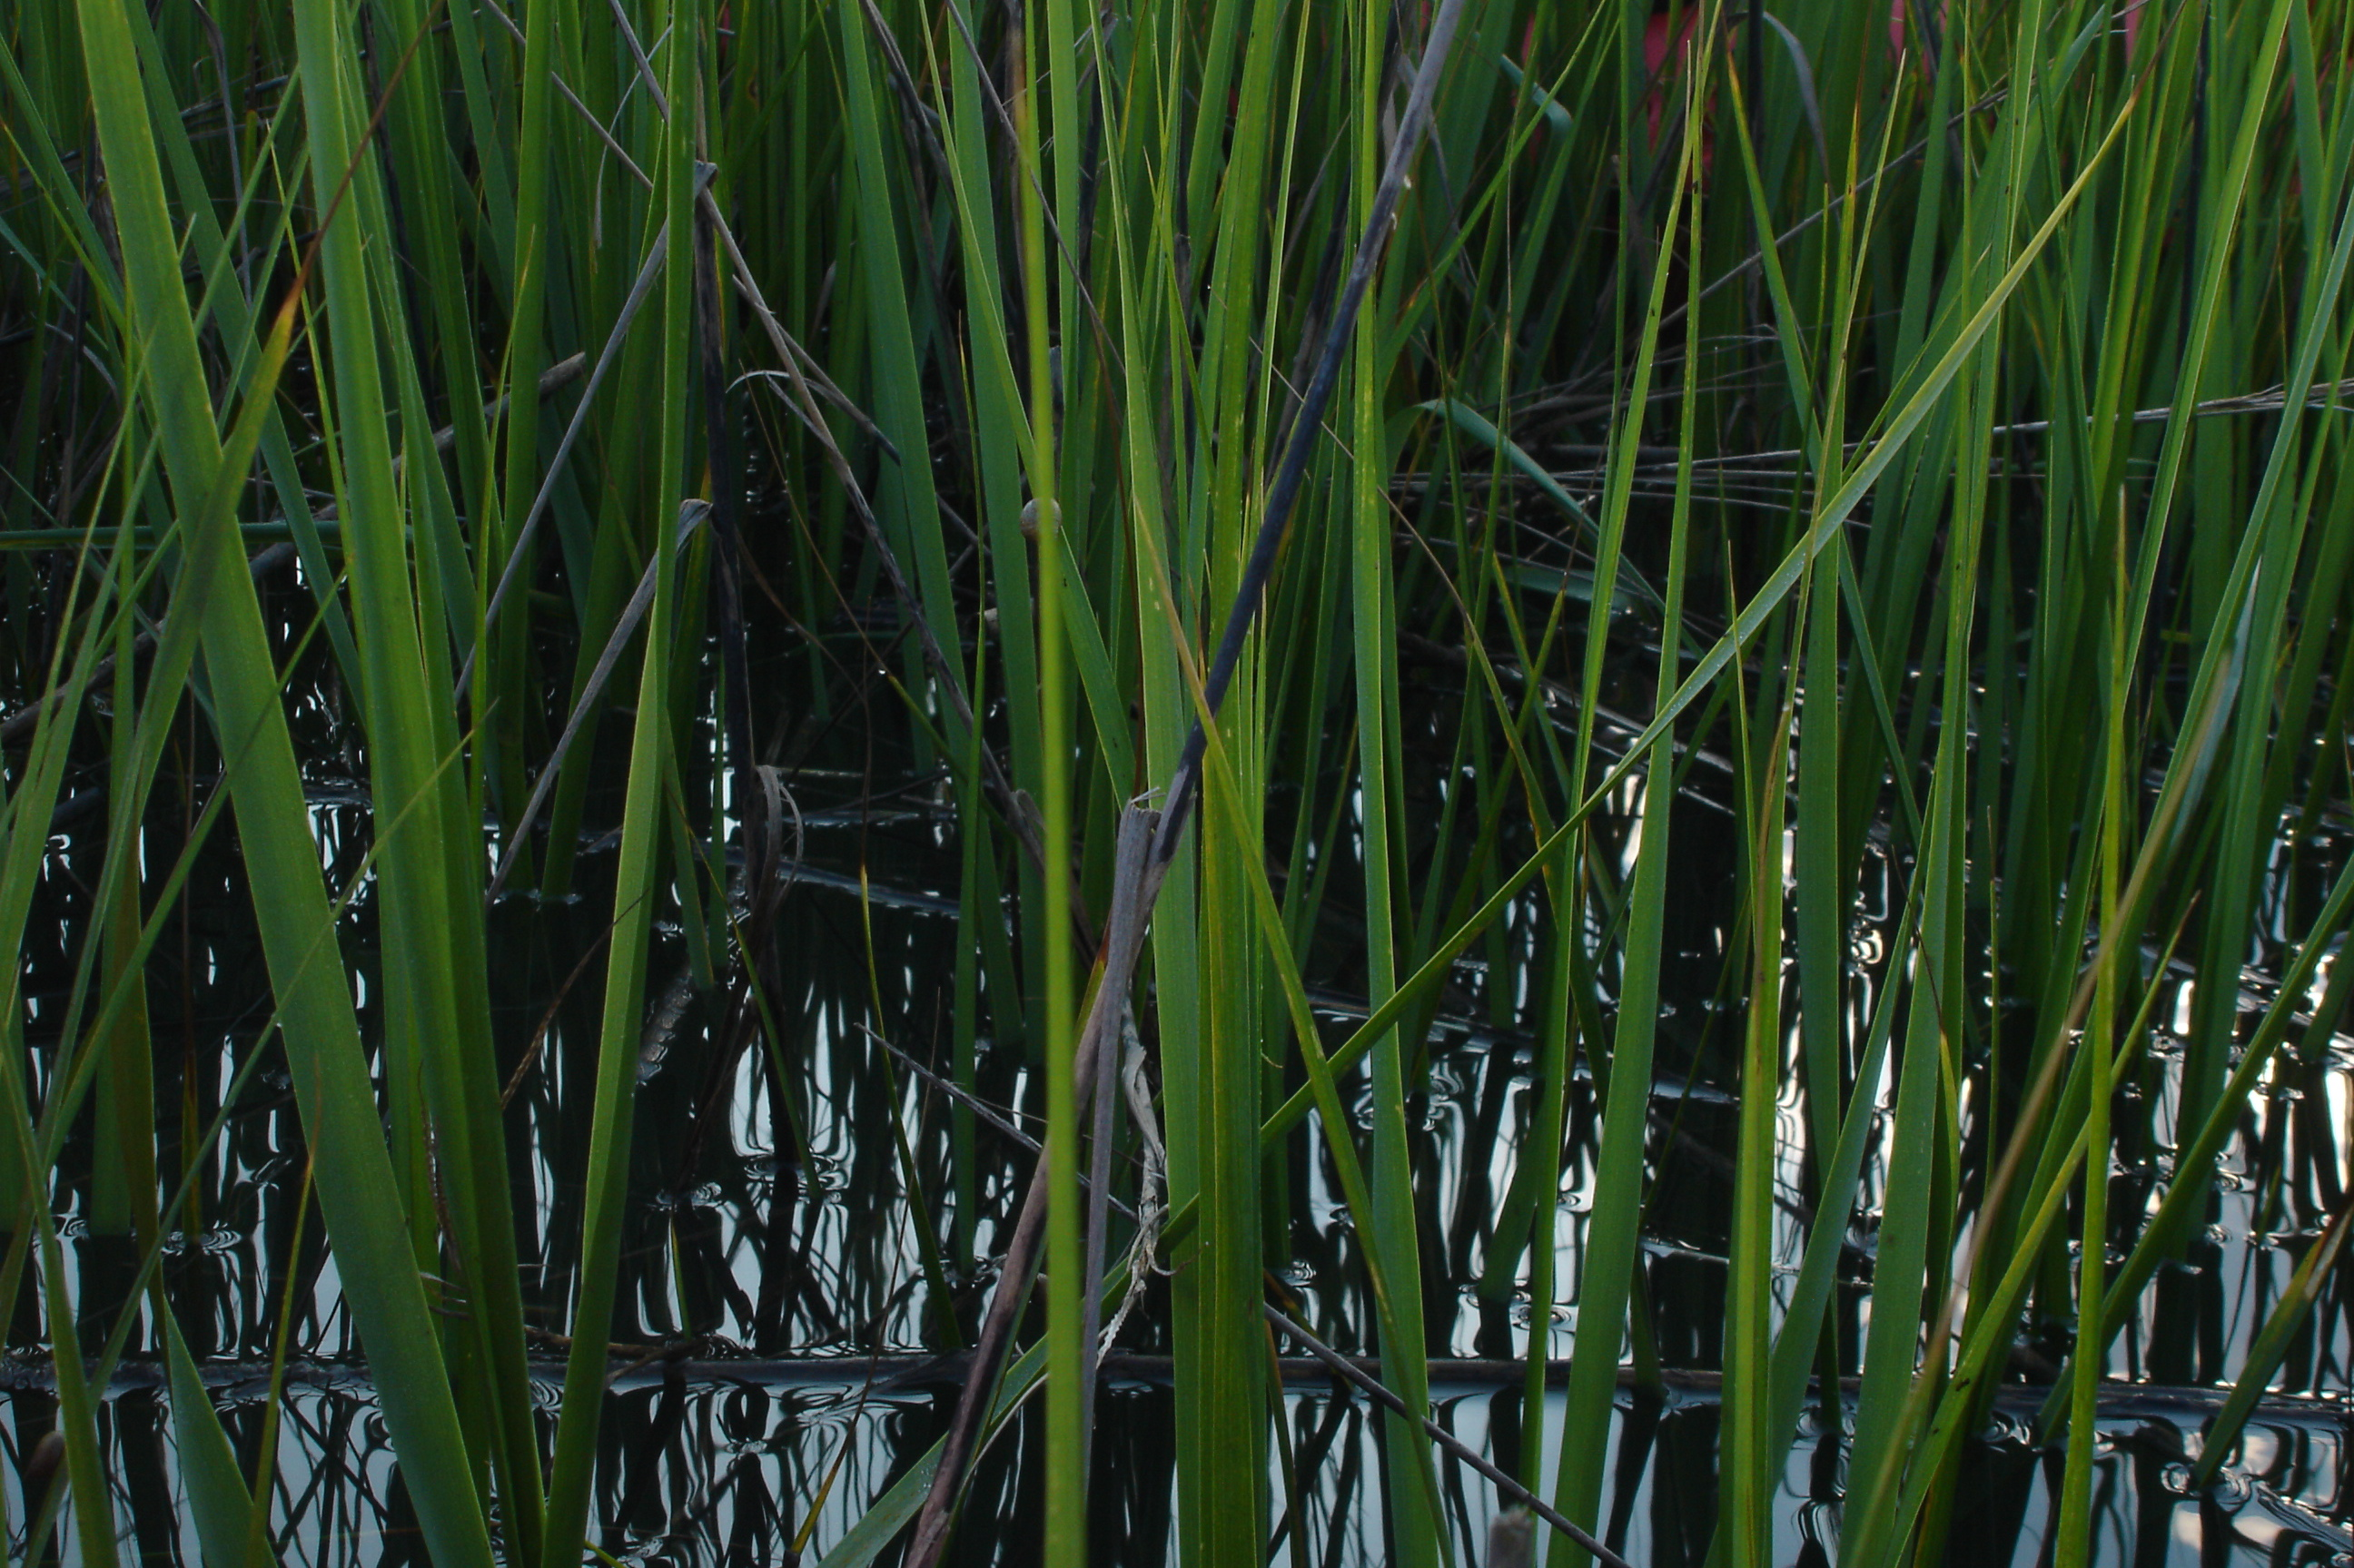 Grass Reeds Pics4learning